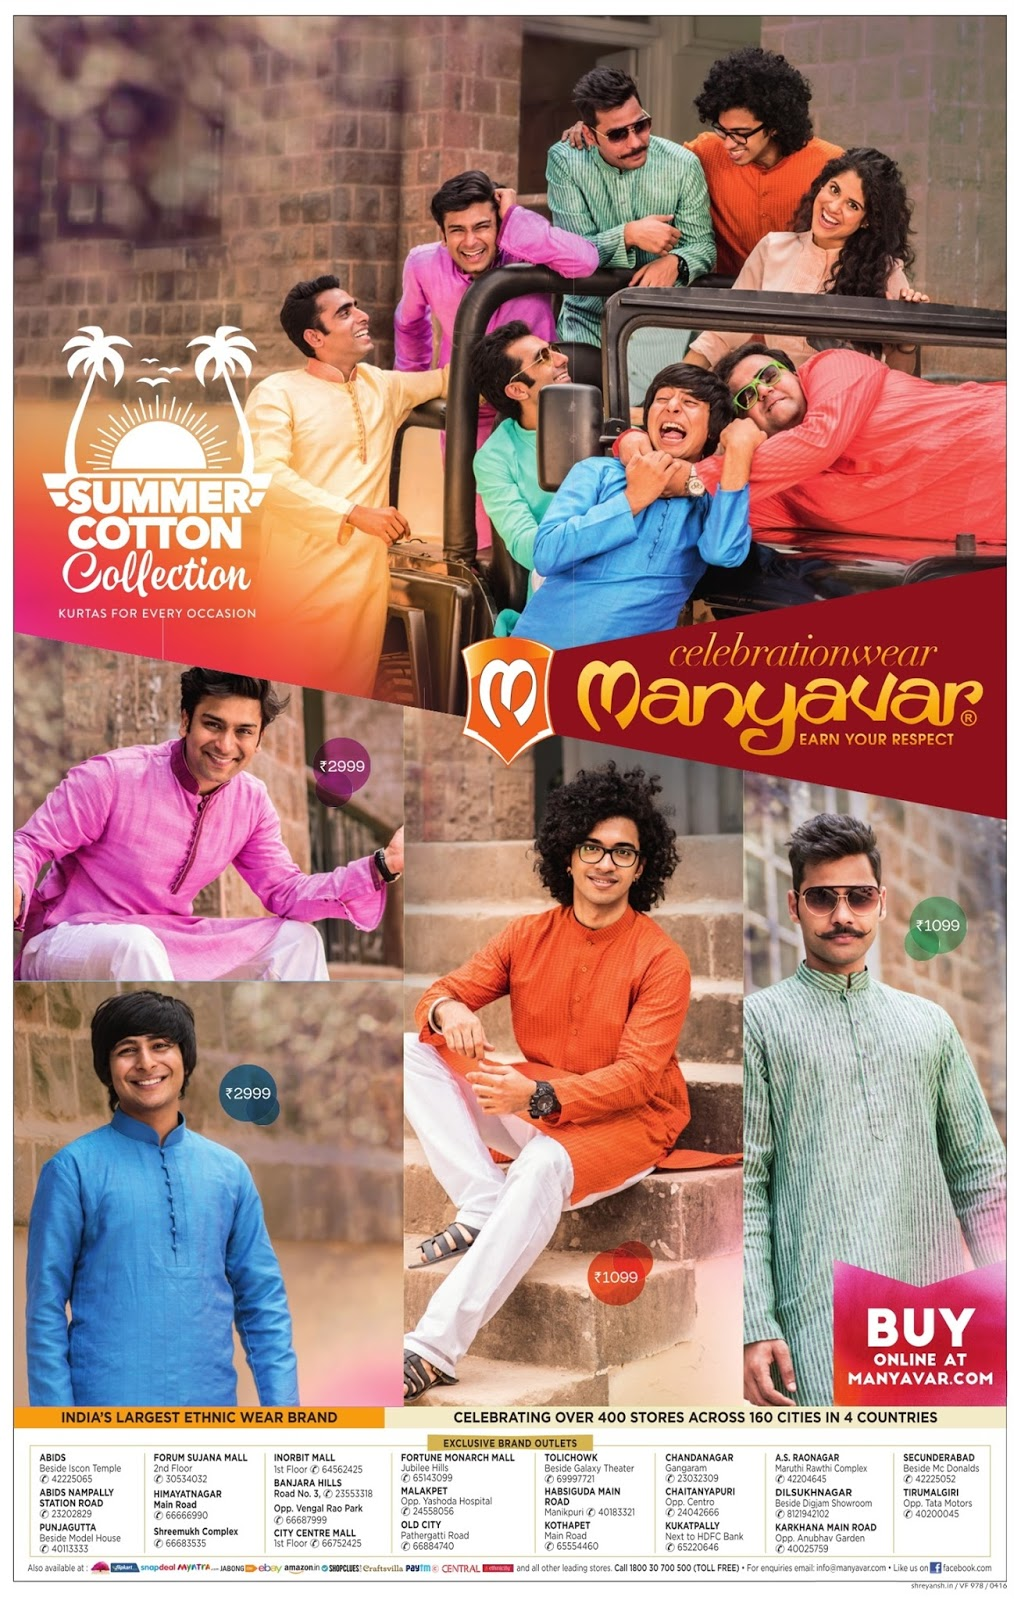 Manyavar Summer cotton collection with best prices | April 2016 discount offer